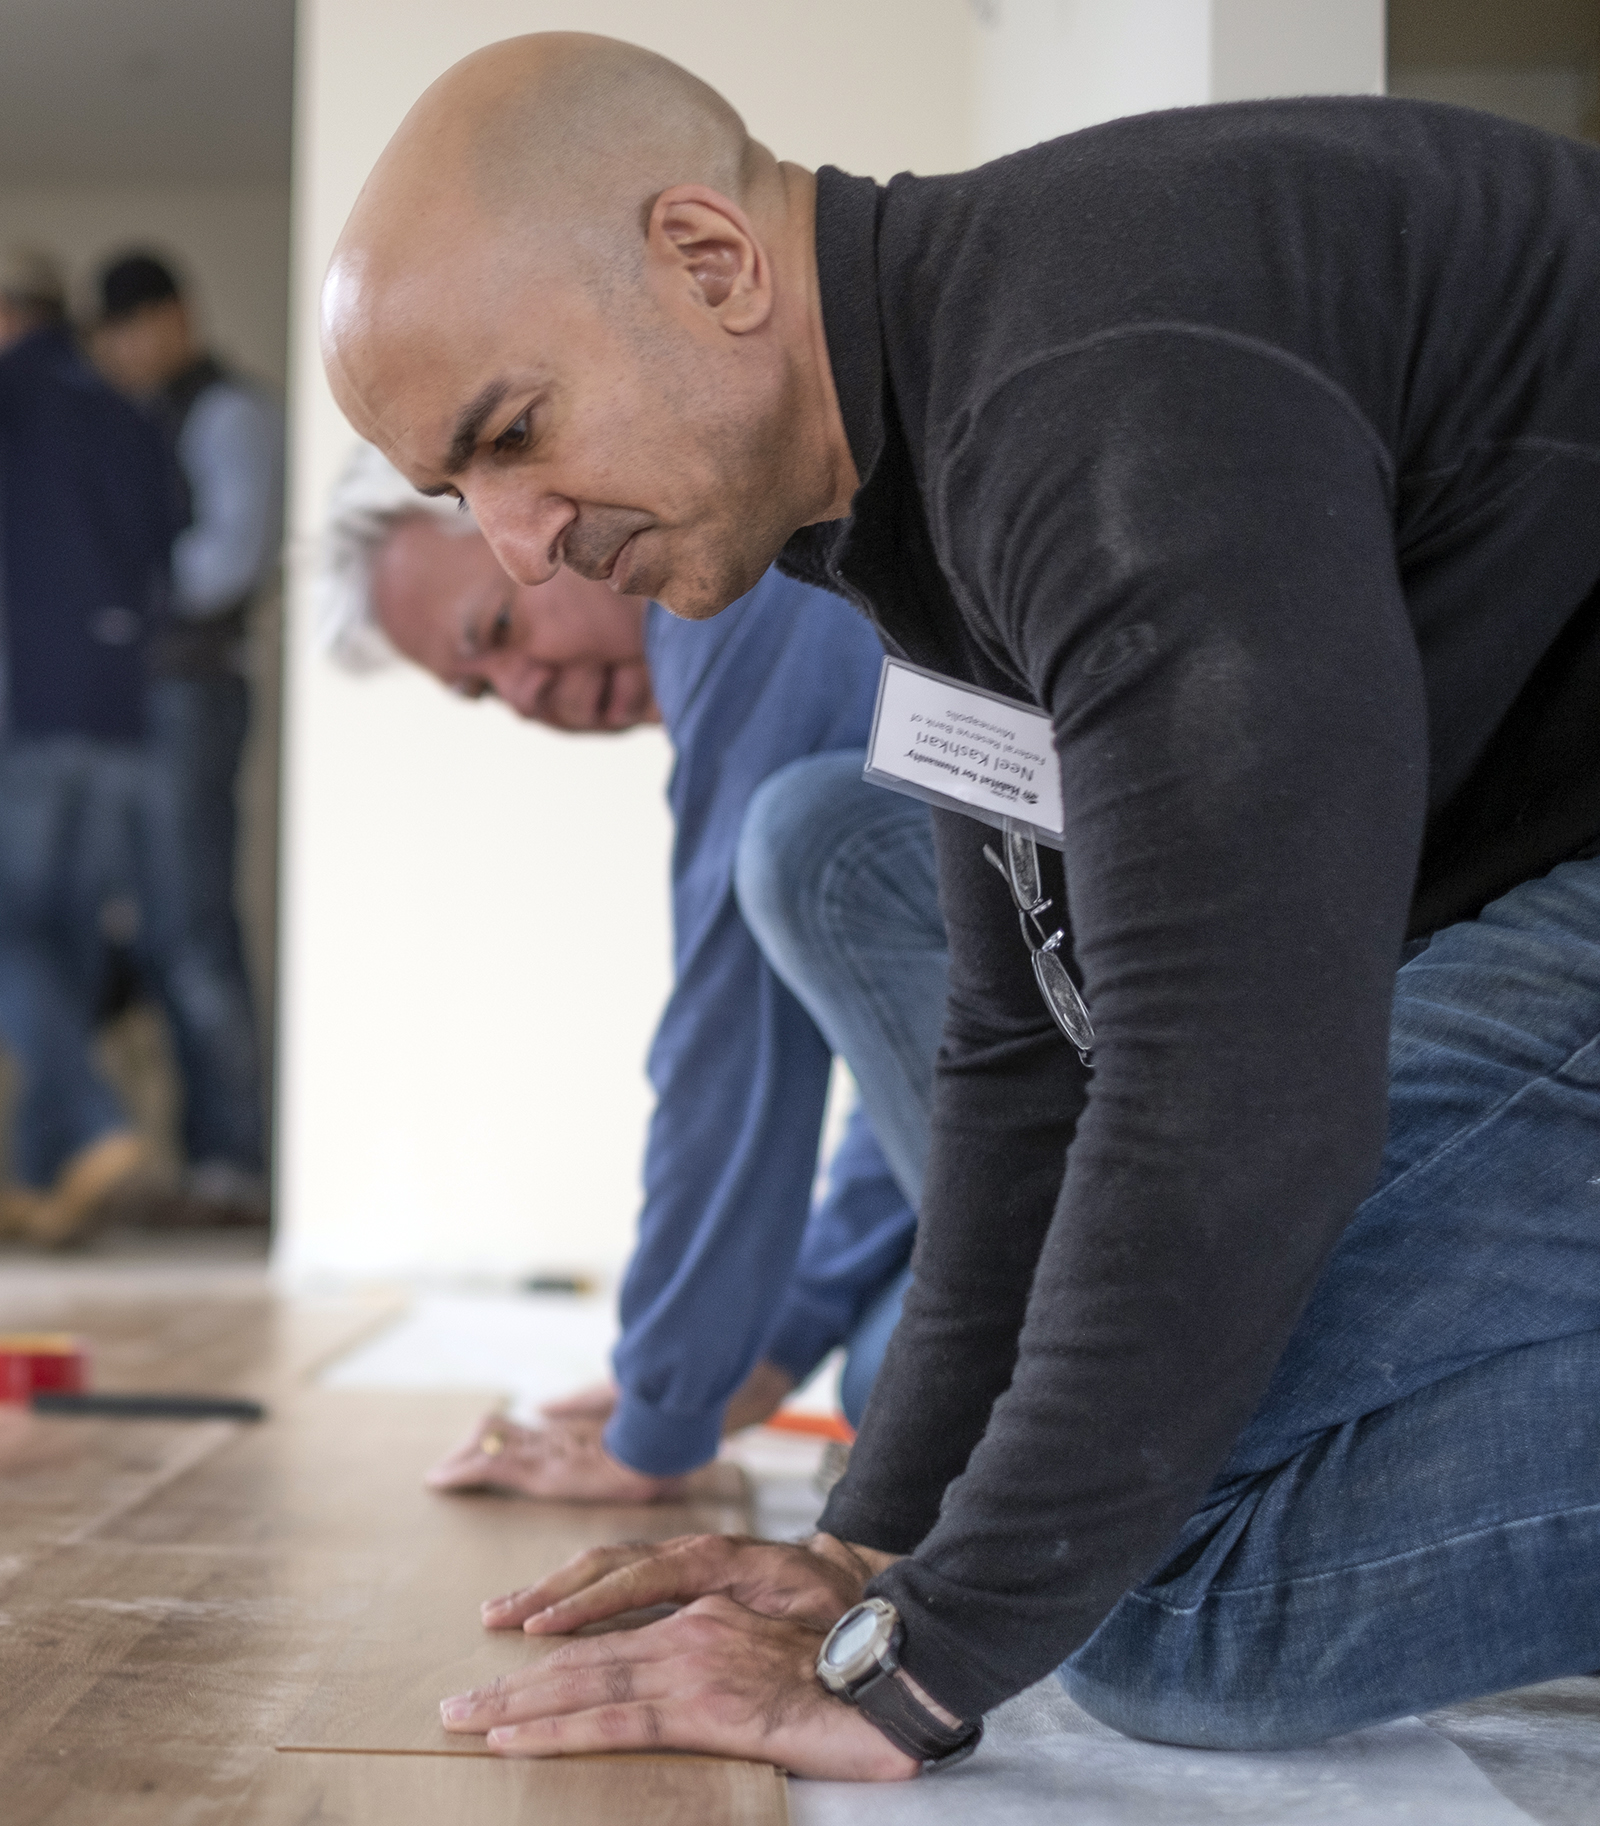 Neel Kashkari, Federal Reserve, working on flooring